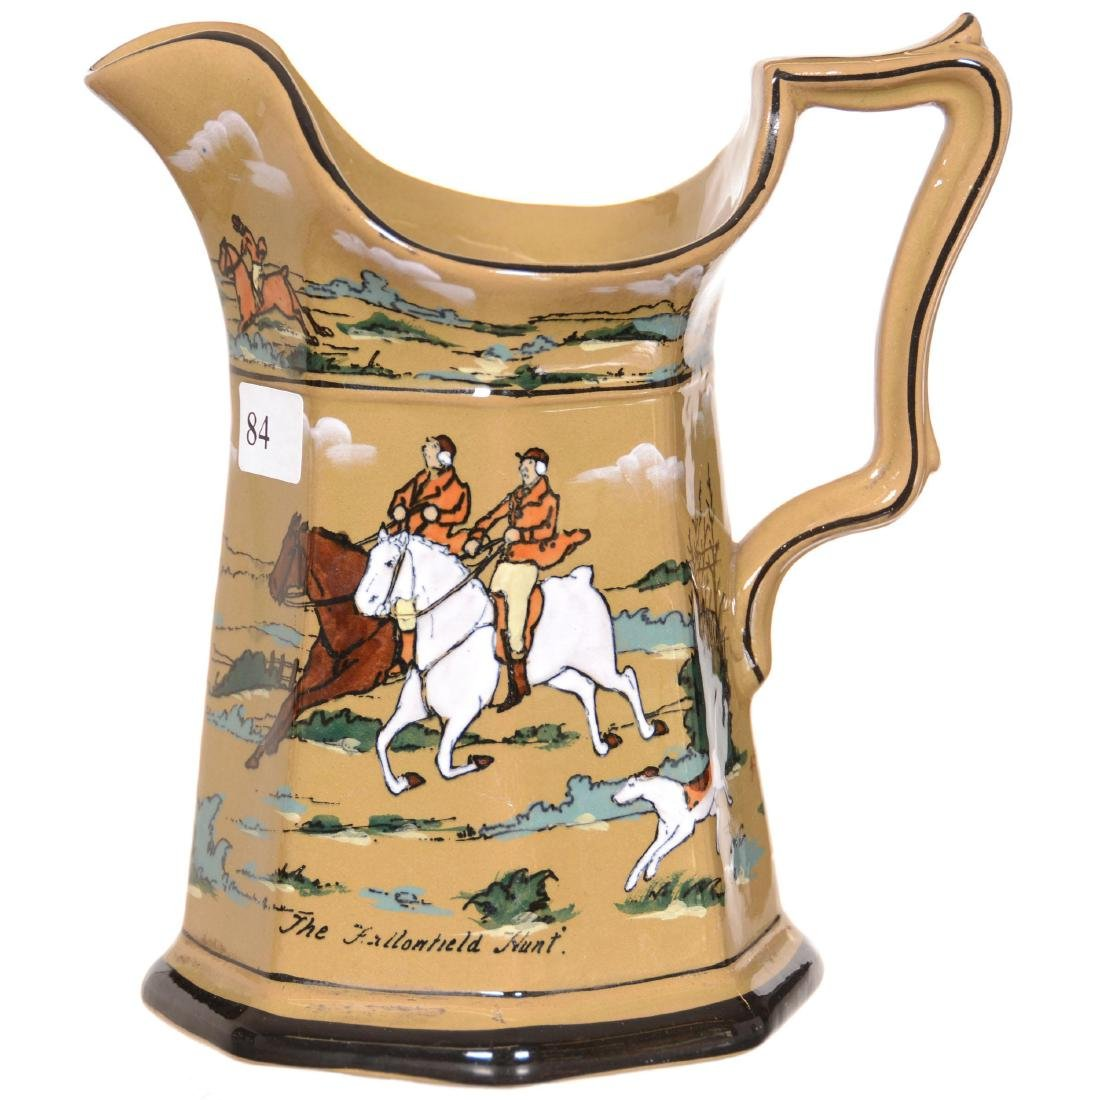 Deldare Pottery Pitcher